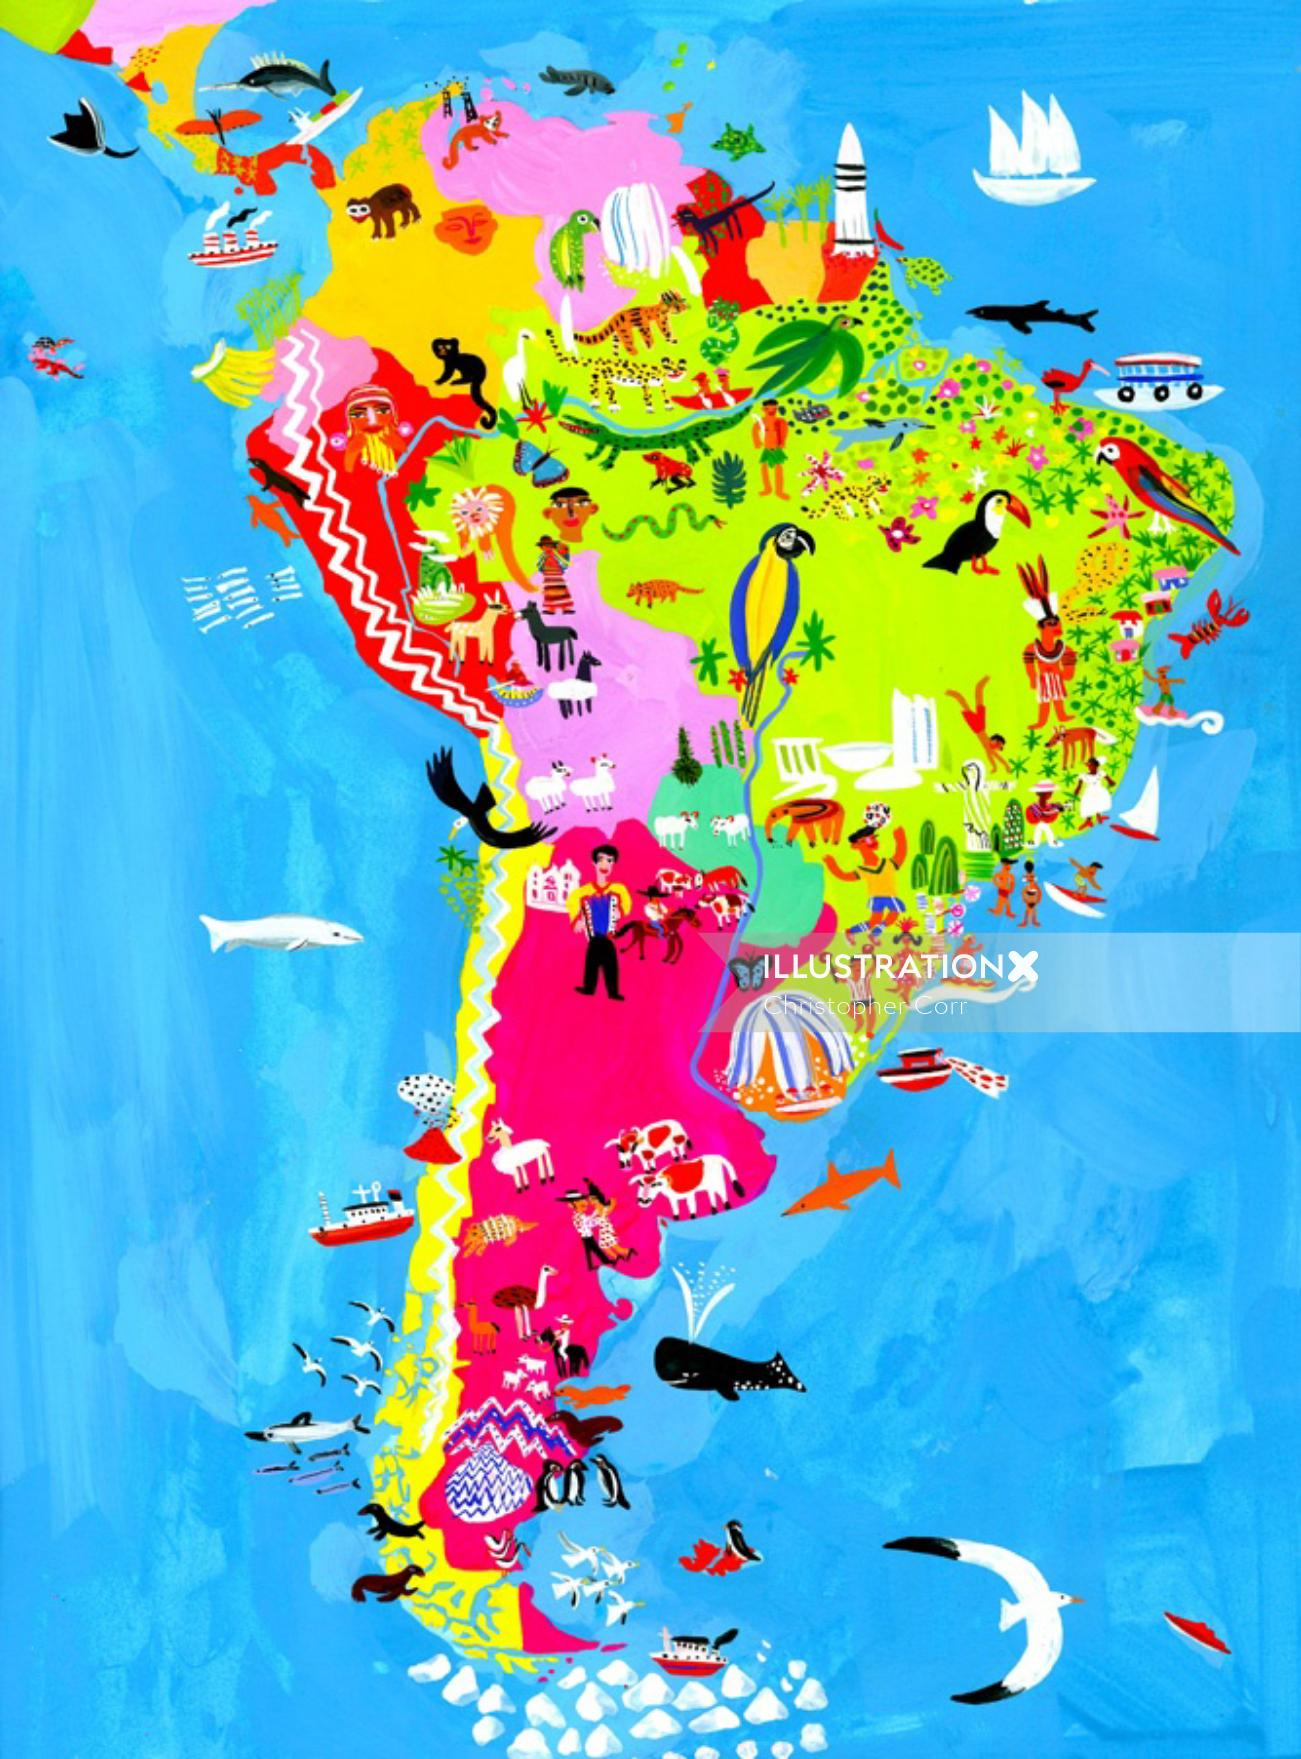 South America map illustration by Christopher Corr